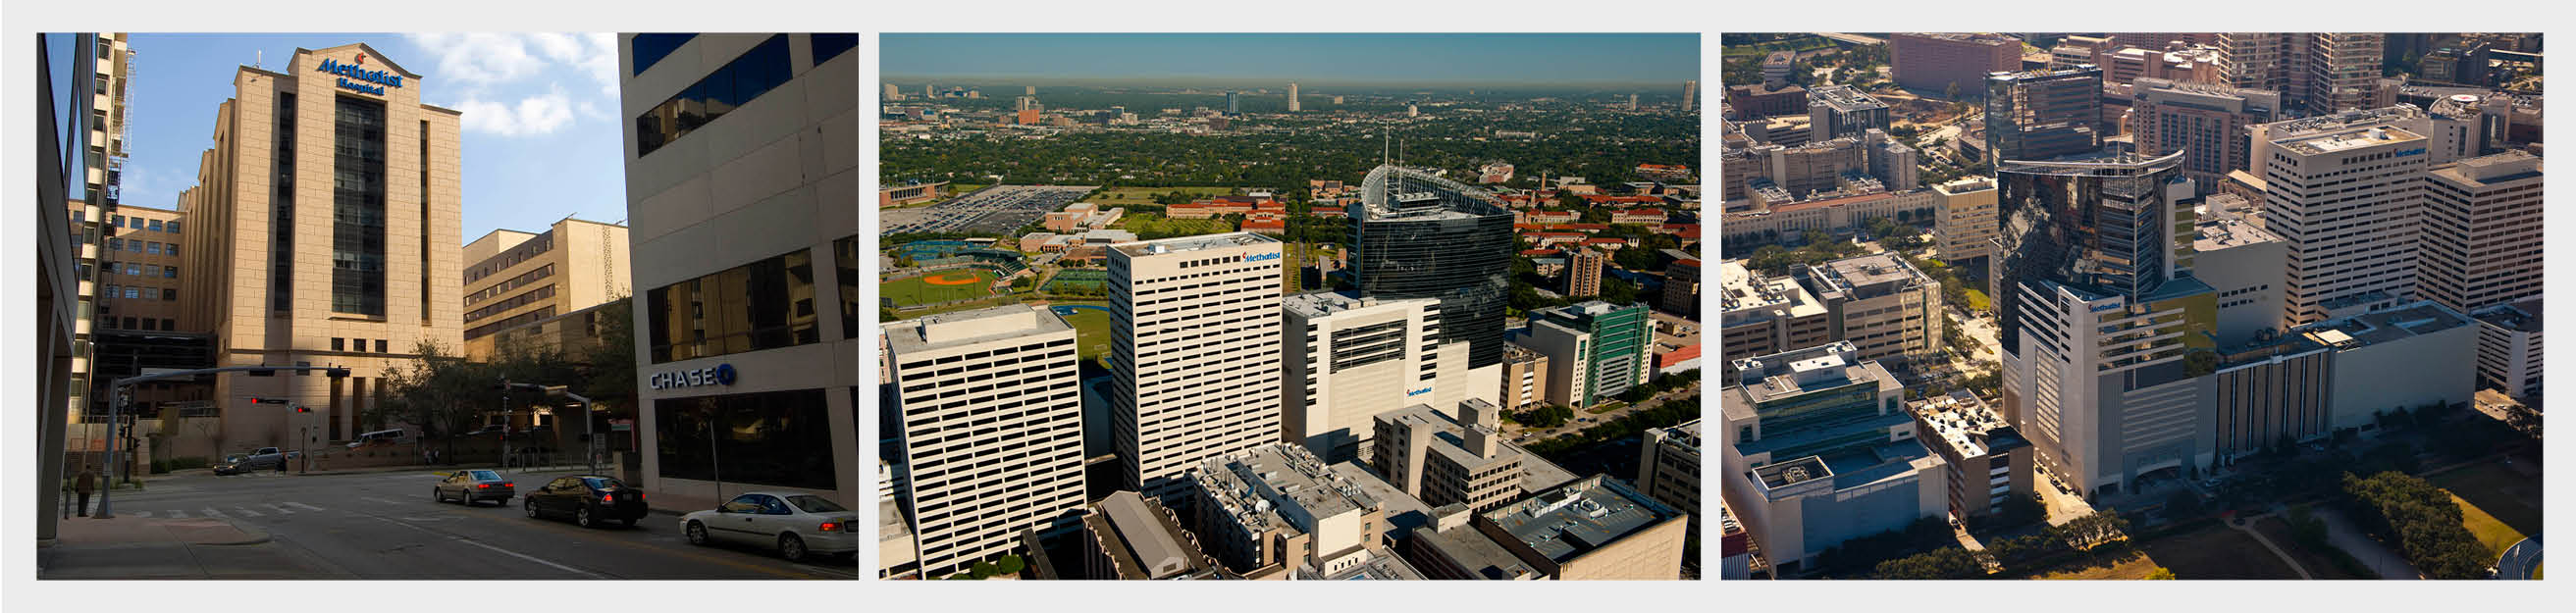 Houston Methodist Hospital | 100 Hospitals and Health